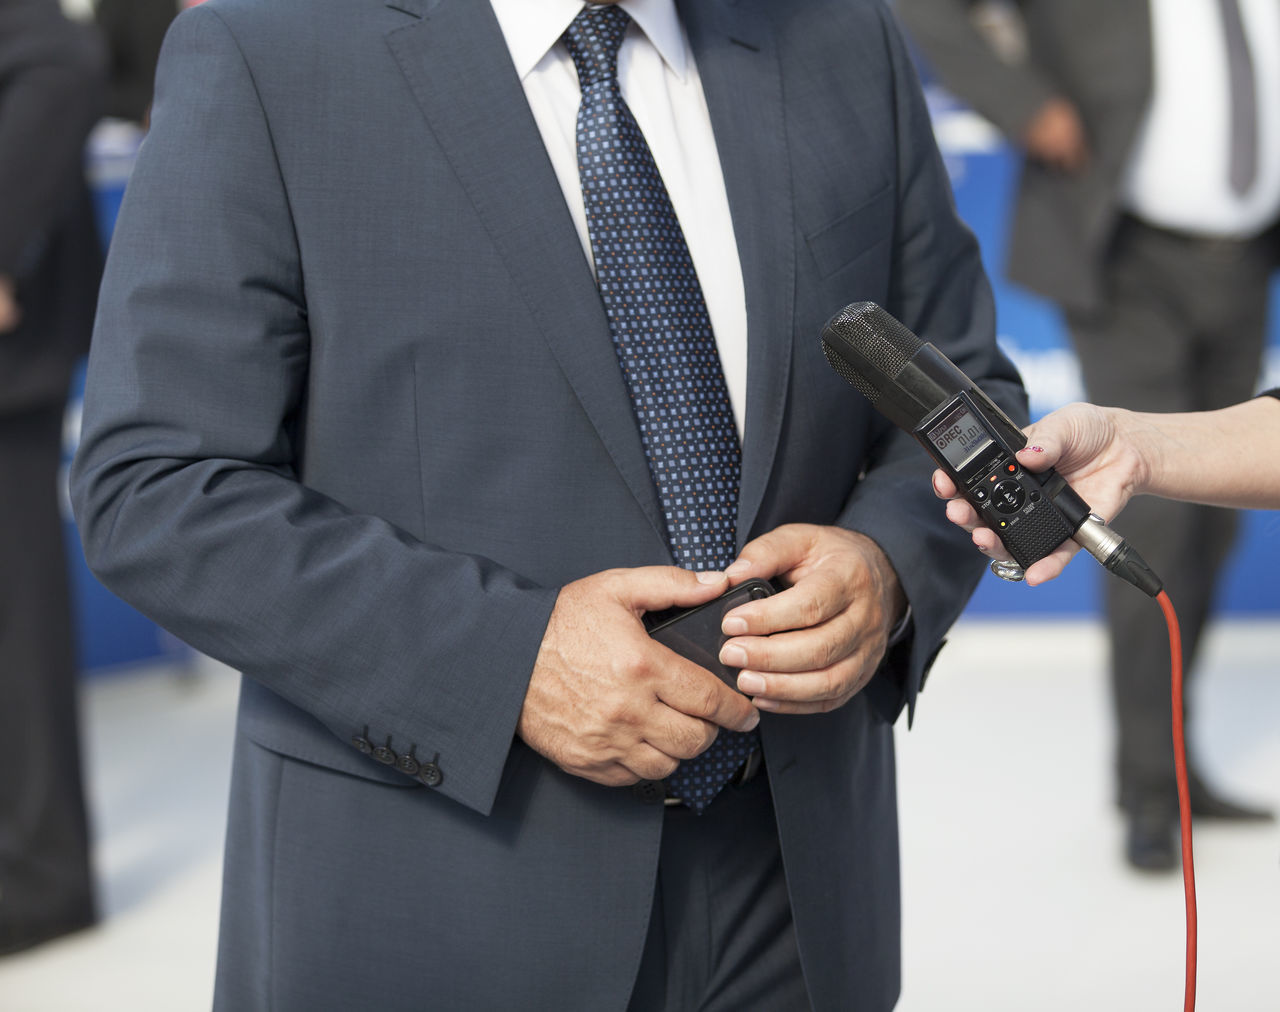 Journalist making interview with businessman or politician Adult Business Businessman BusinessManagementClass Close-up Enjoying Life Event Hand Holding Human Hand Interview Journalist Men Microphone Outdoors People Politician Politicians Press Suit